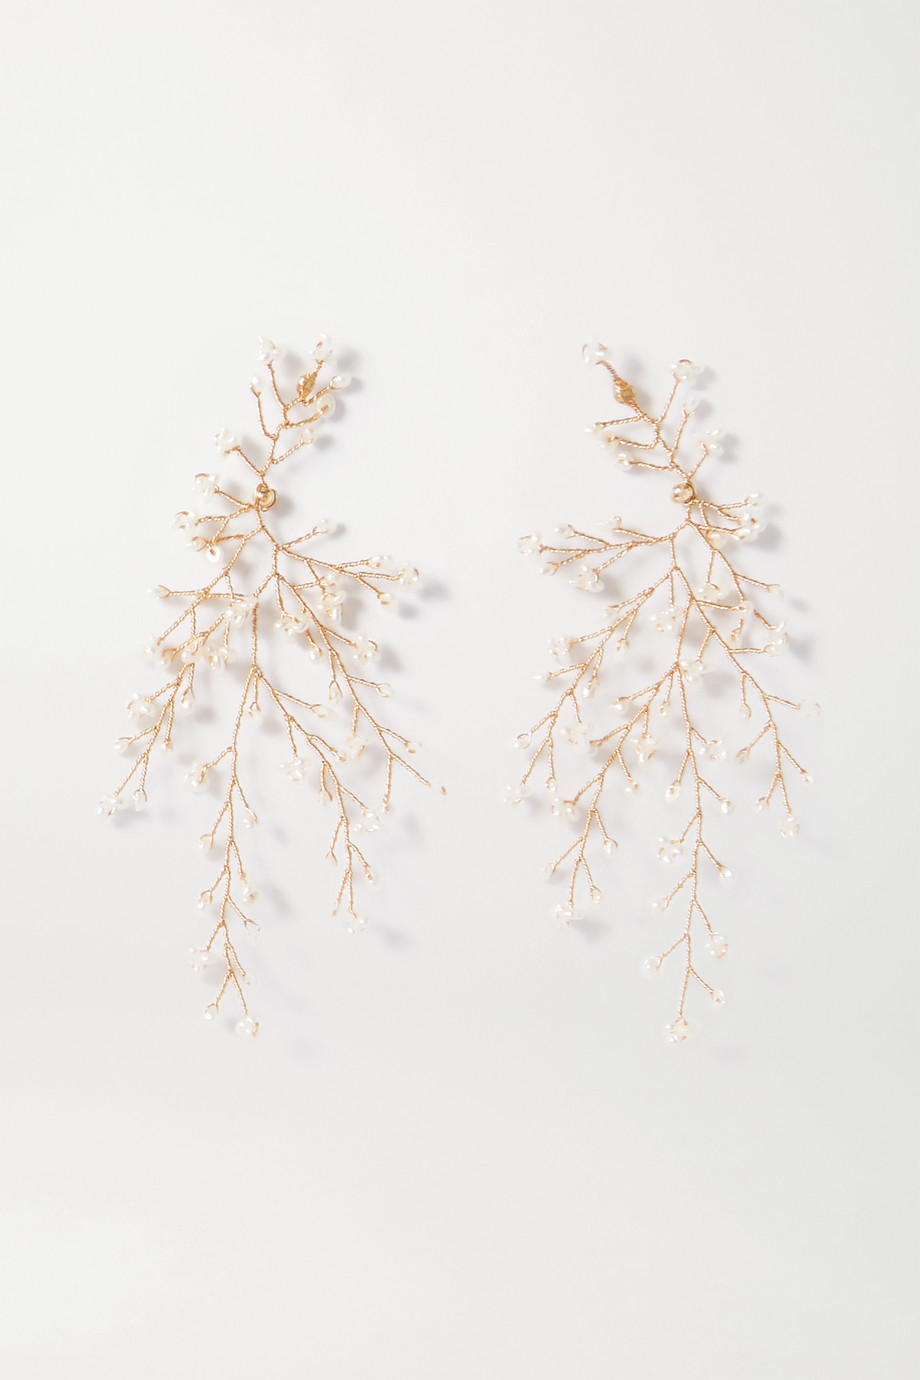 14 / Quatorze Baby's Breath gold-plated pearl earrings